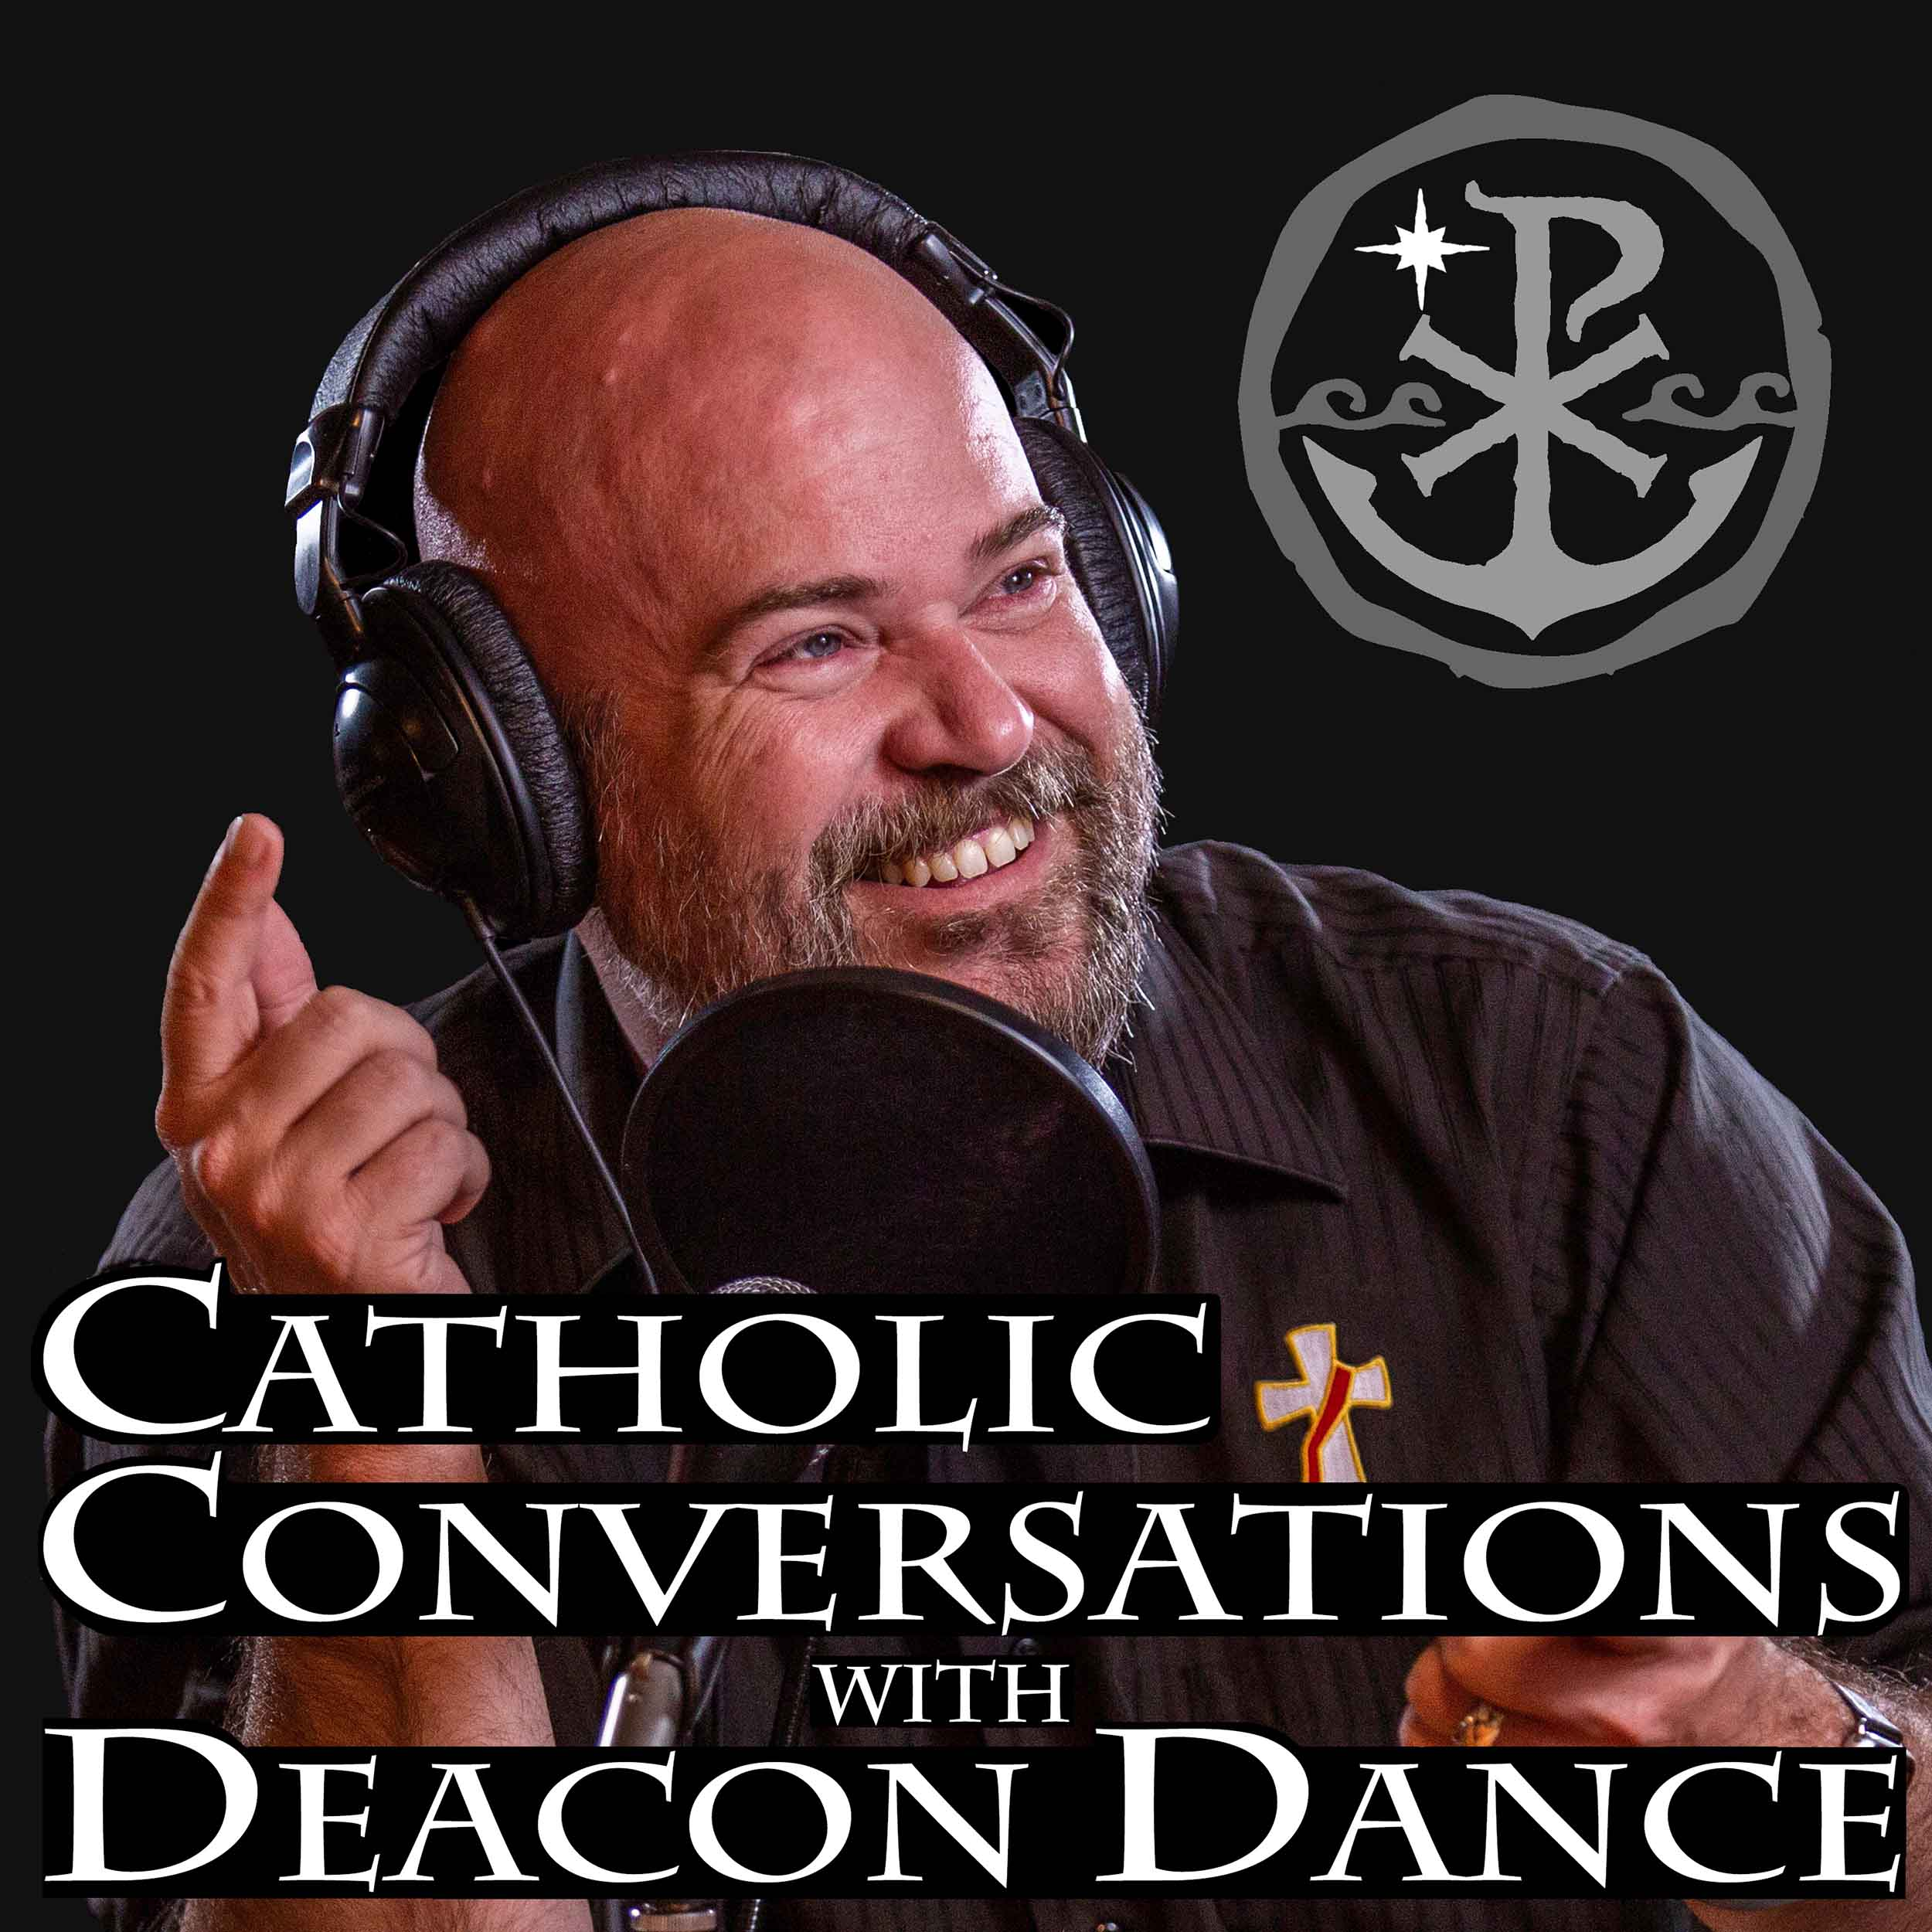 Catholic Conversations with Deacon Dance